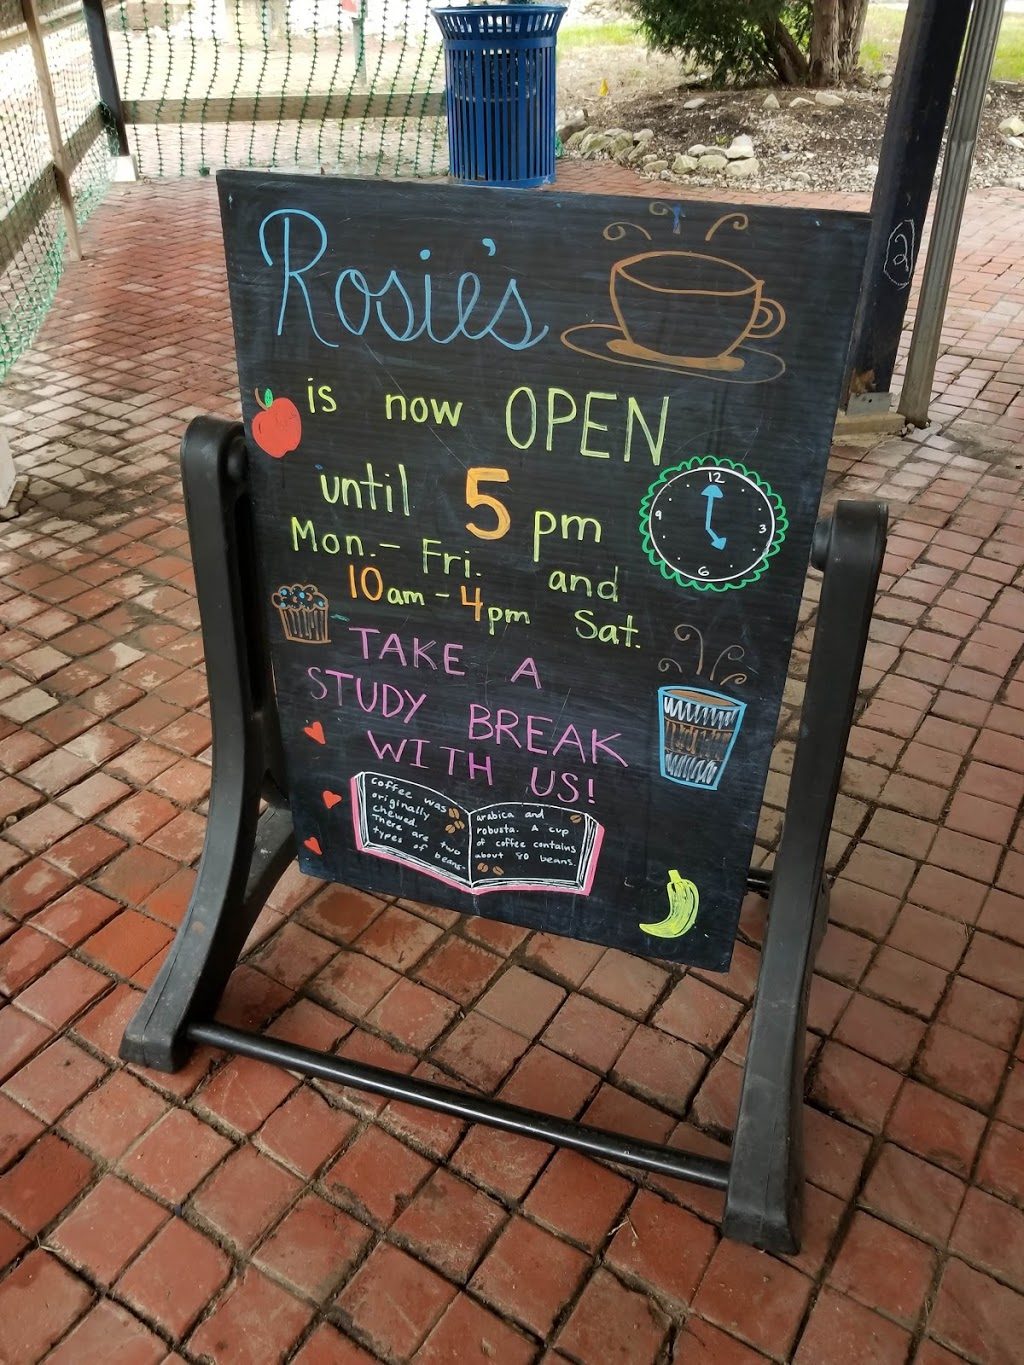 Rosies Coffee at Villanova Station - cafe  | Photo 4 of 10 | Address: Train Station, 308 N Spring Mill Rd, Villanova, PA 19085, USA | Phone: (267) 253-1249